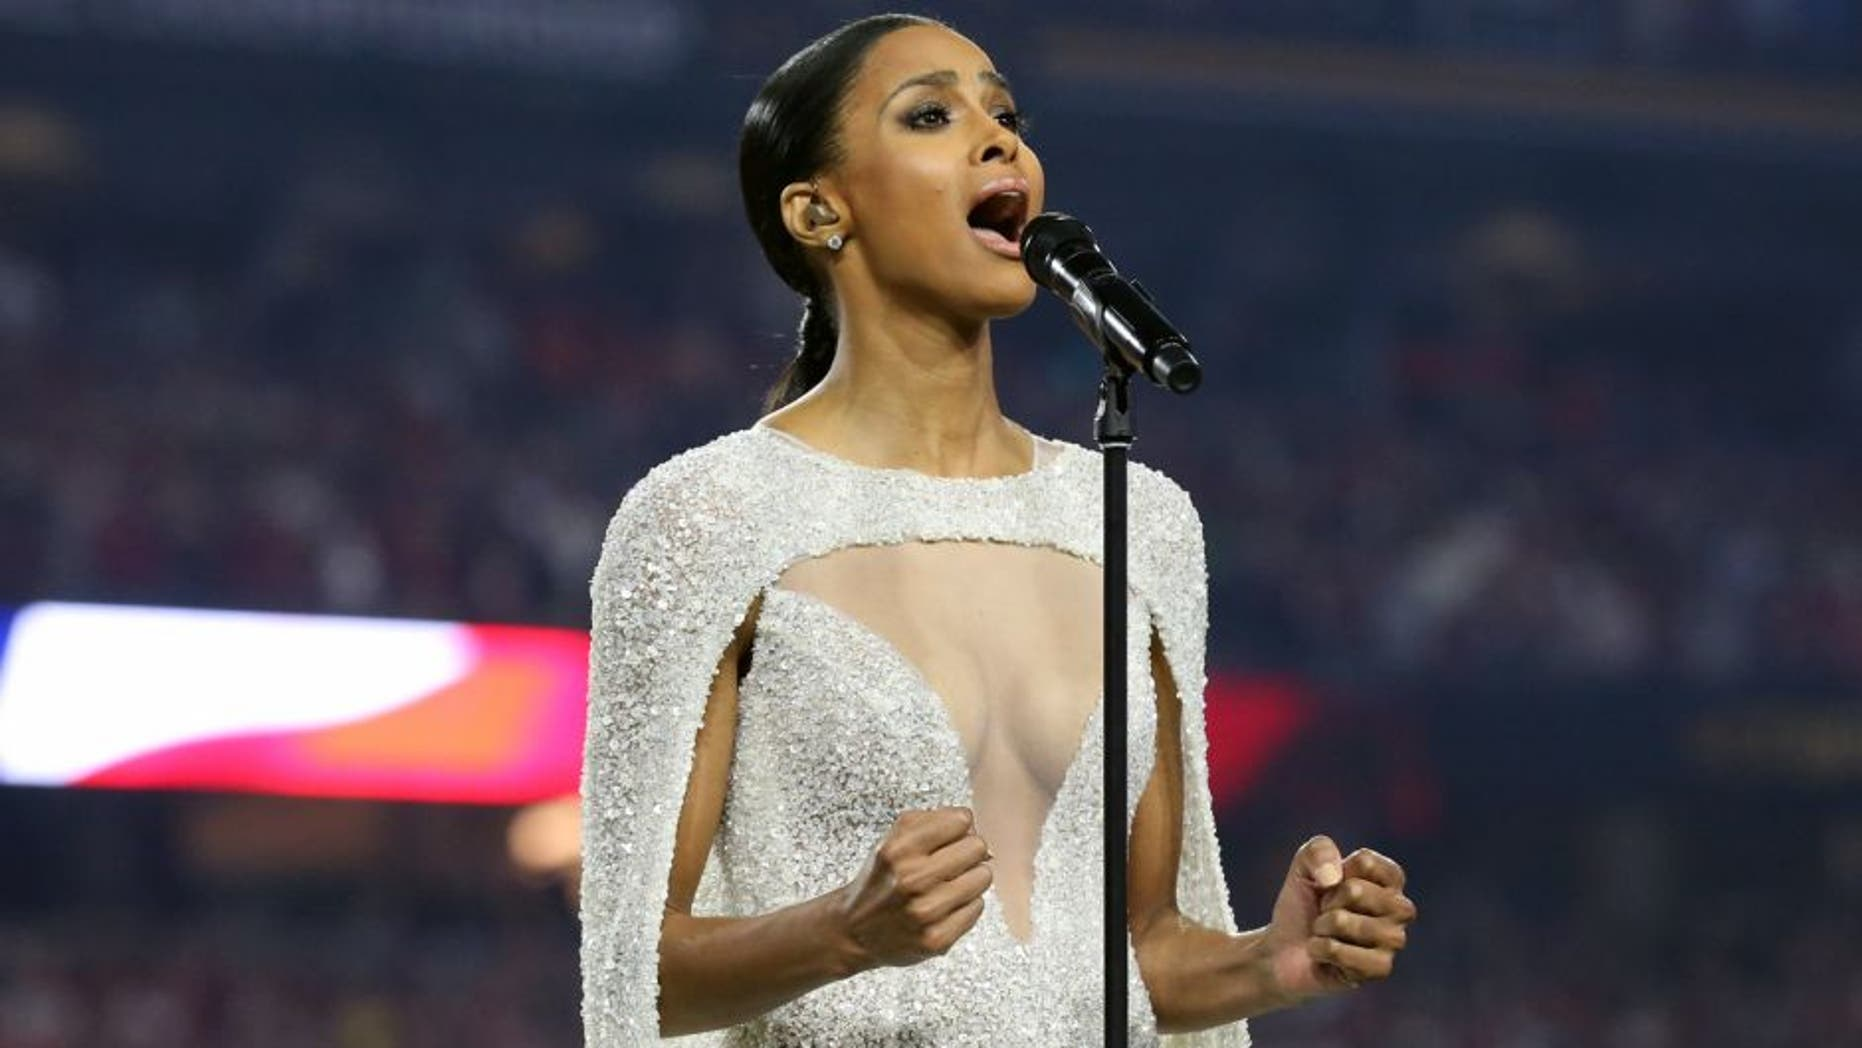 Jan 11, 2016; Glendale, AZ, USA; Recording artist Ciara sign the National Anthem prior to the game between the Alabama Crimson Tide and the Clemson Tigers in the 2016 CFP National Championship at University of Phoenix Stadium. Mandatory Credit: Matthew Emmons-USA TODAY Sports